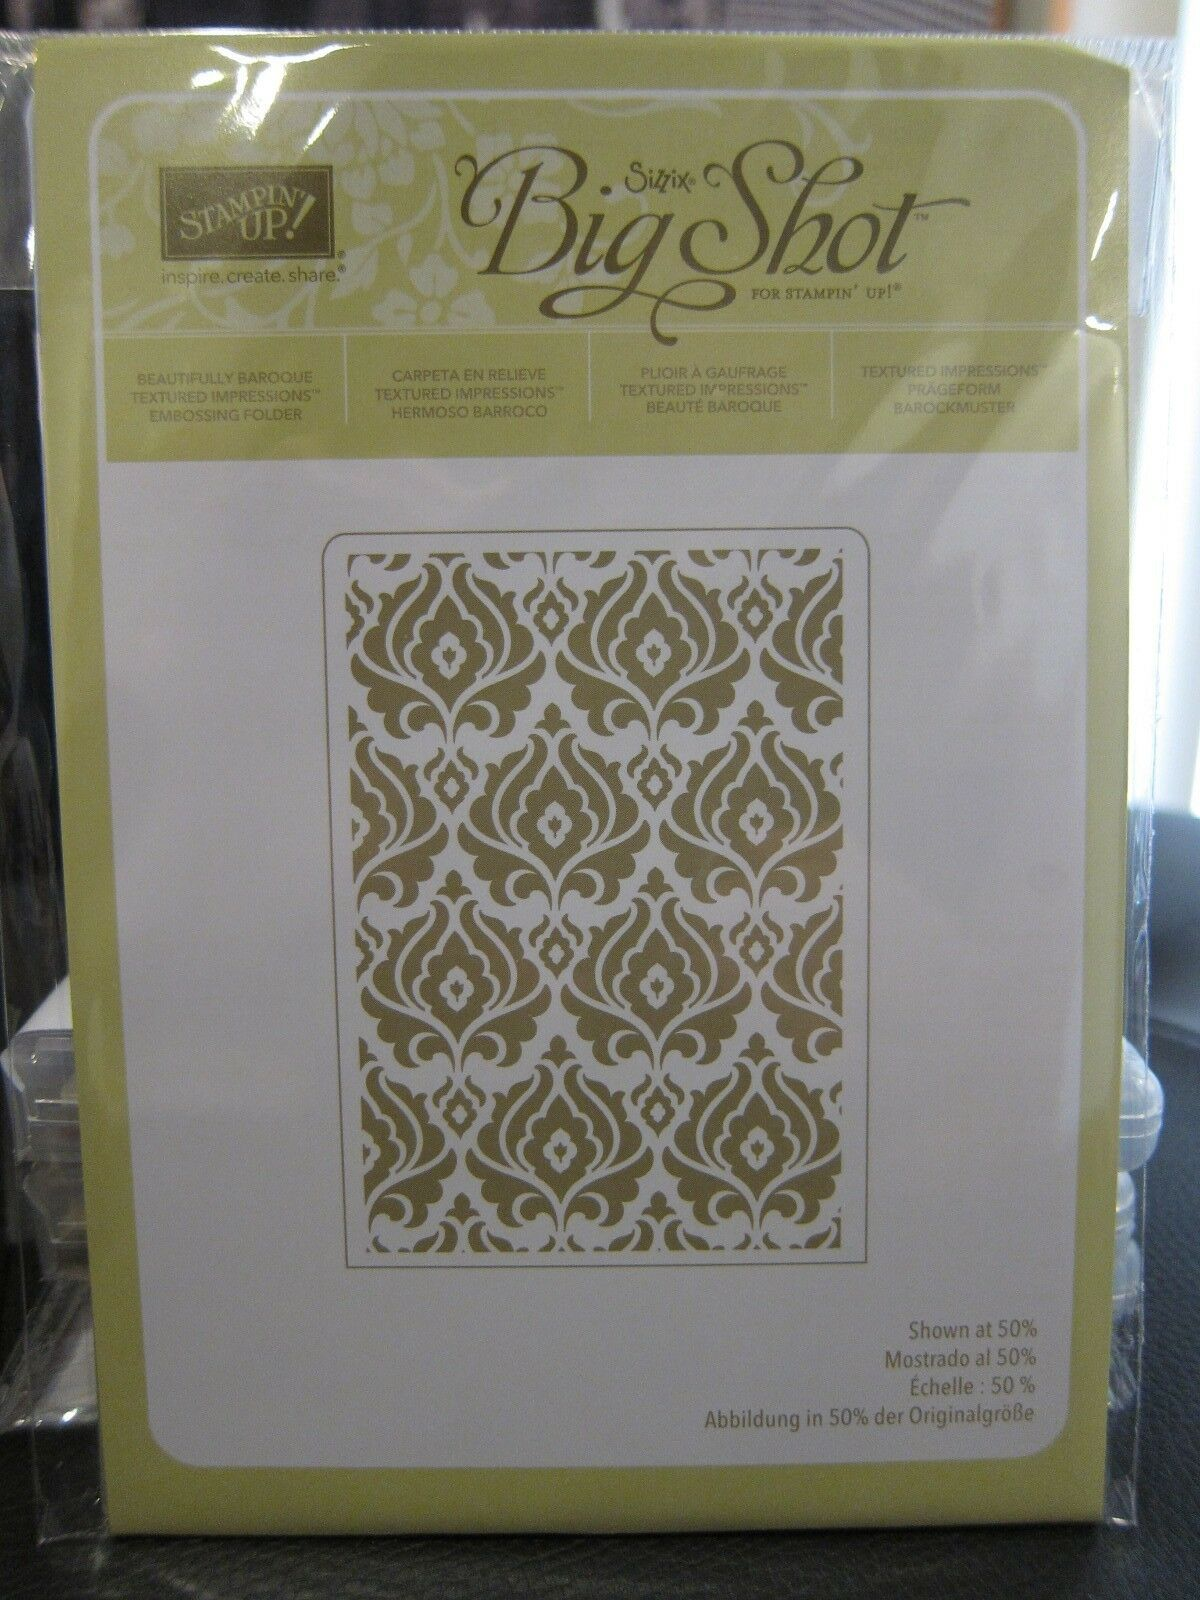 Stampin Up Pick an Embossing Folder for Big Shot Sizzix Textured Impression~ A10